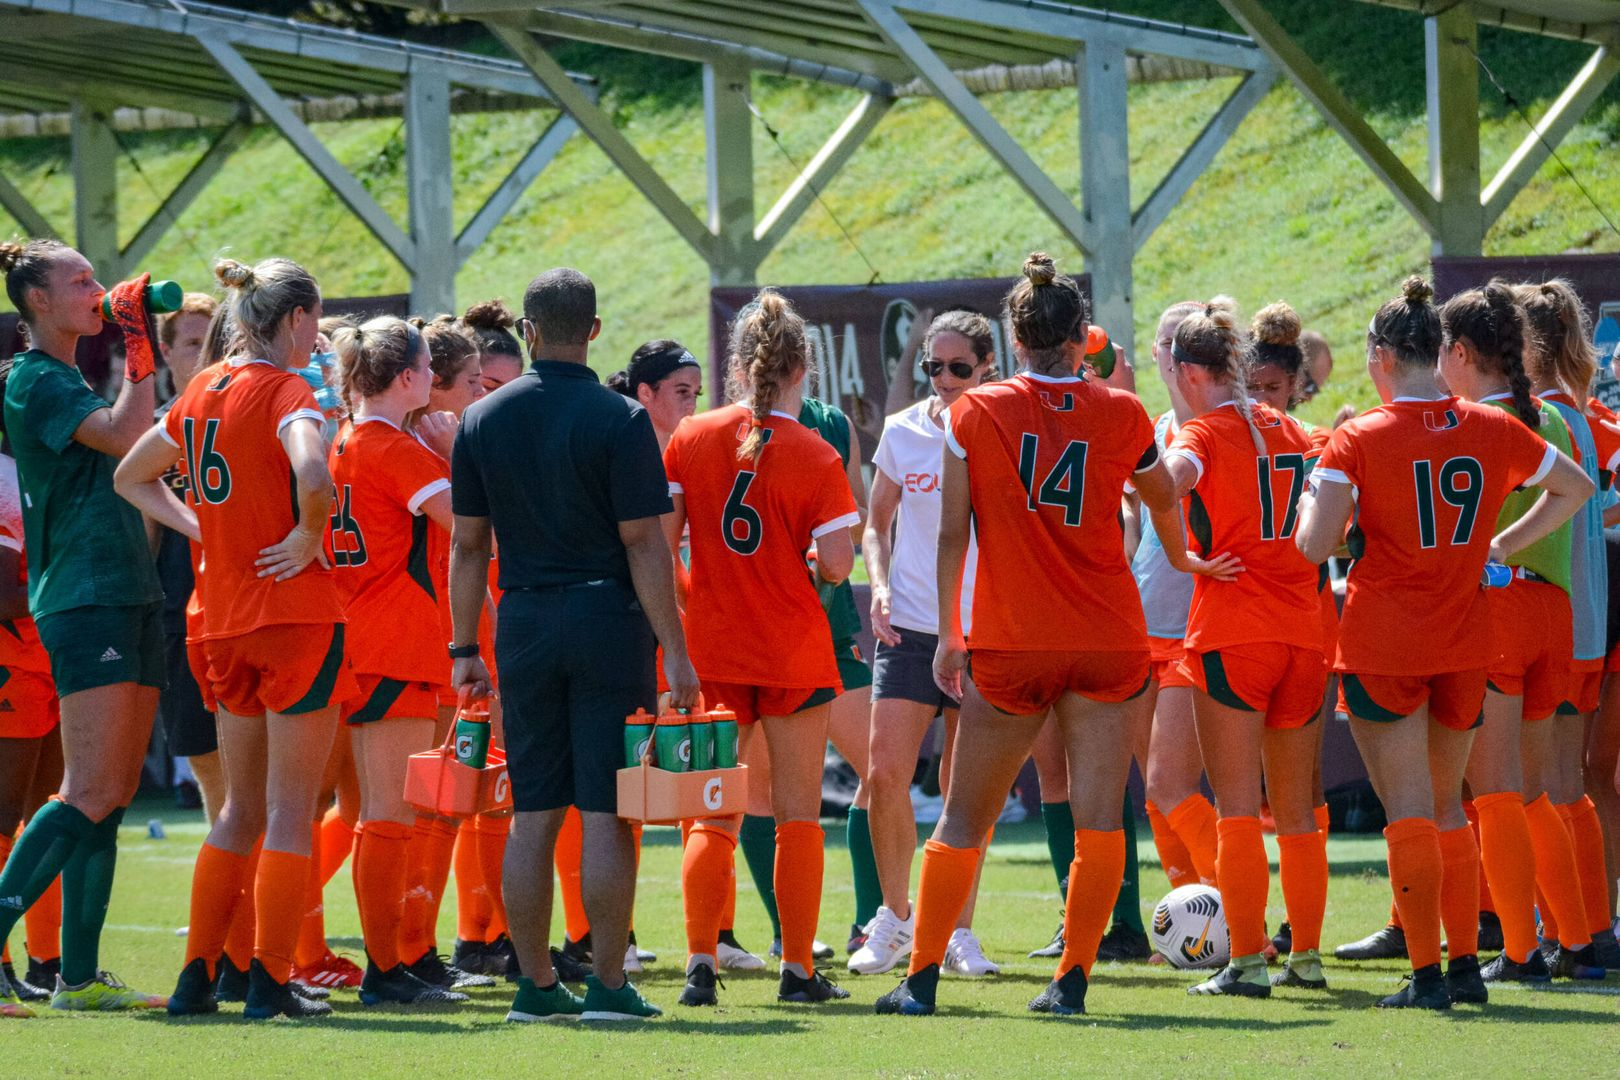 Canes Fall to Top-Ranked Noles